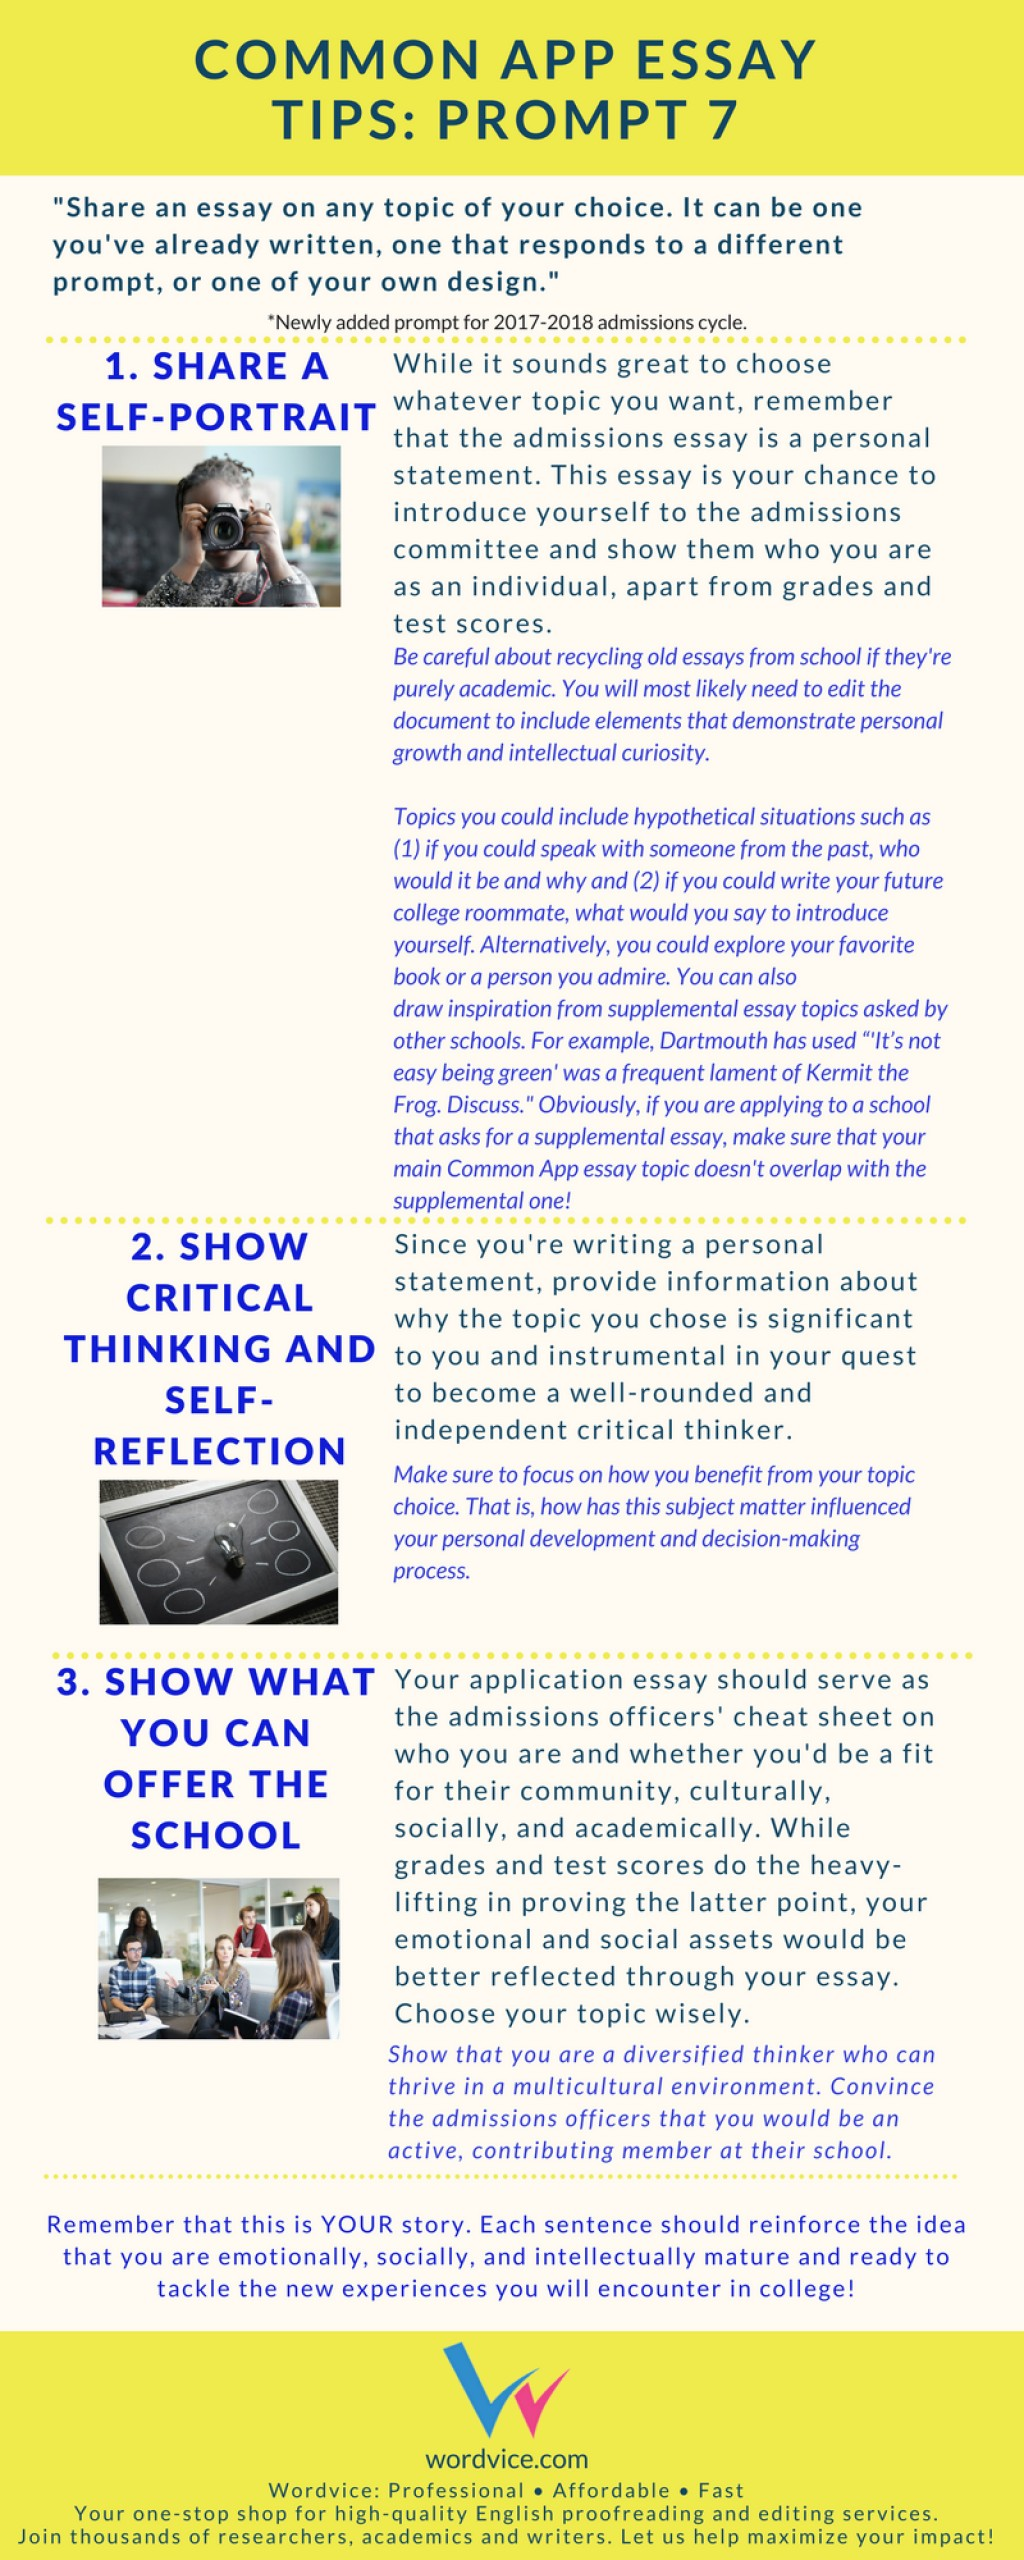 010 Common Application Essay Prompts Example App Brainstormprompt Best 2017 Examples Large